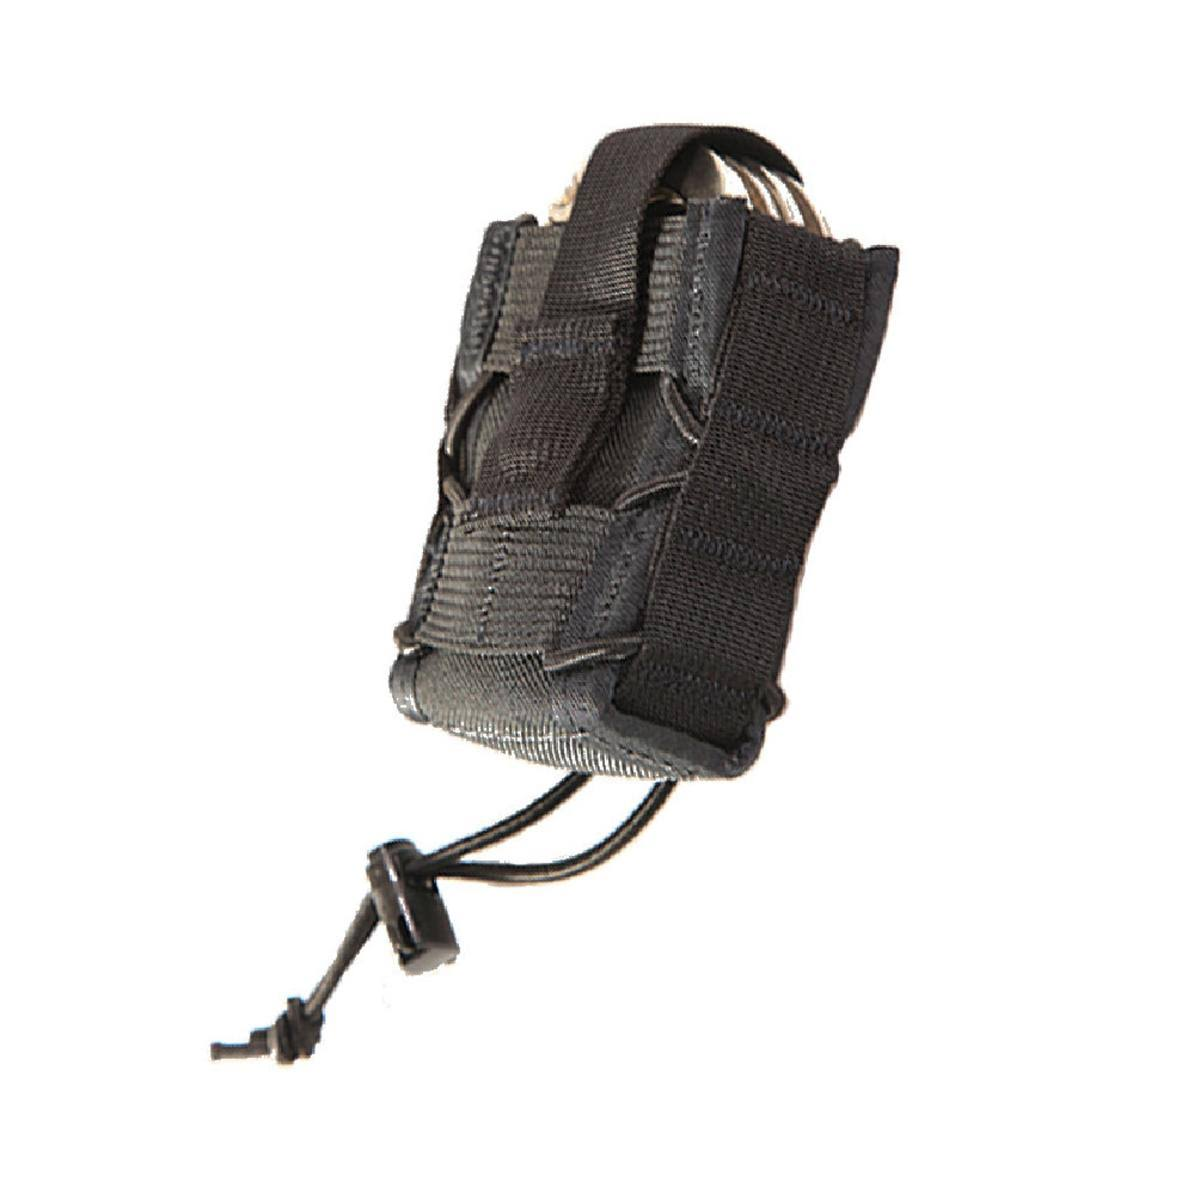 "High Speed Gear Molle Compatible Handcuff Taco - Black, 3"" x 4.5"""